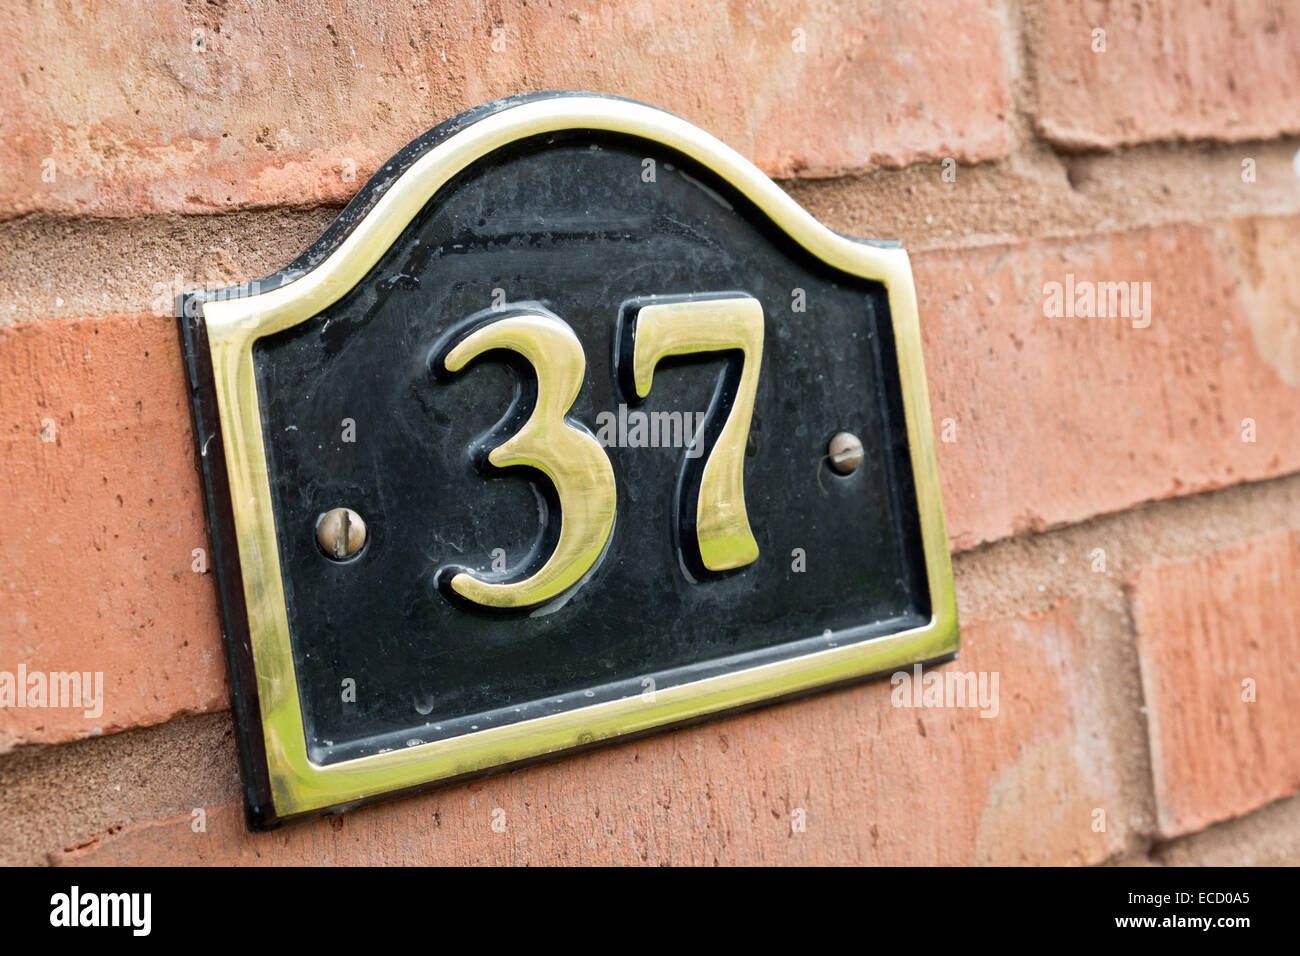 The number 37 on a brass plate affixed to the red brick wall of a home to signify it's address - Stock Image